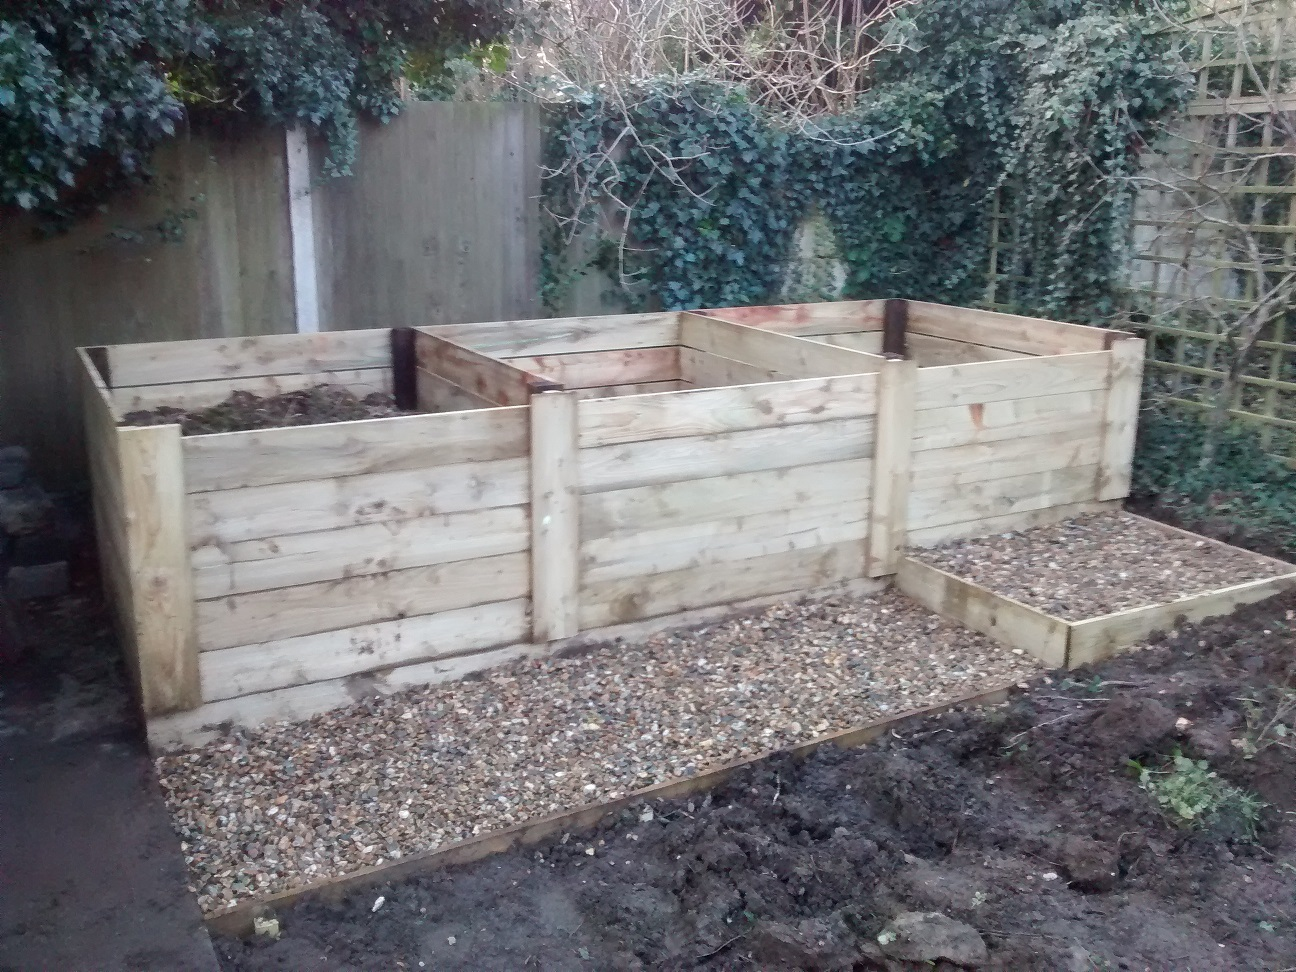 3 compost bins and path